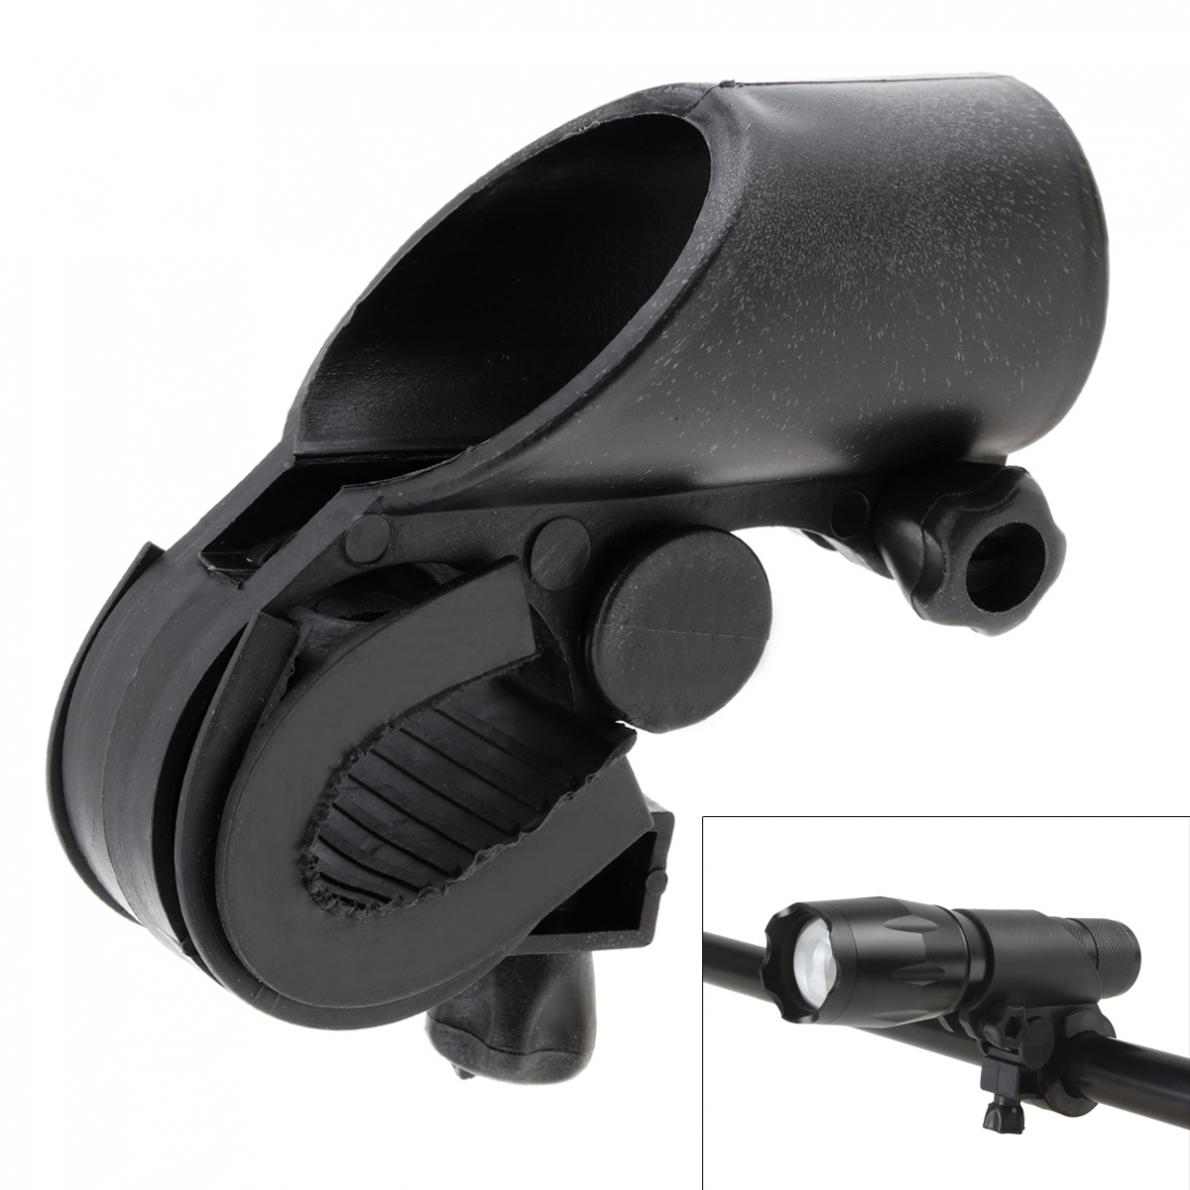 19 - 27mm High-Quality Durable Black Bicycle Light Holder Lamp Clip LED Flashlight Torch Clamp Mount Bracket And Sleeve